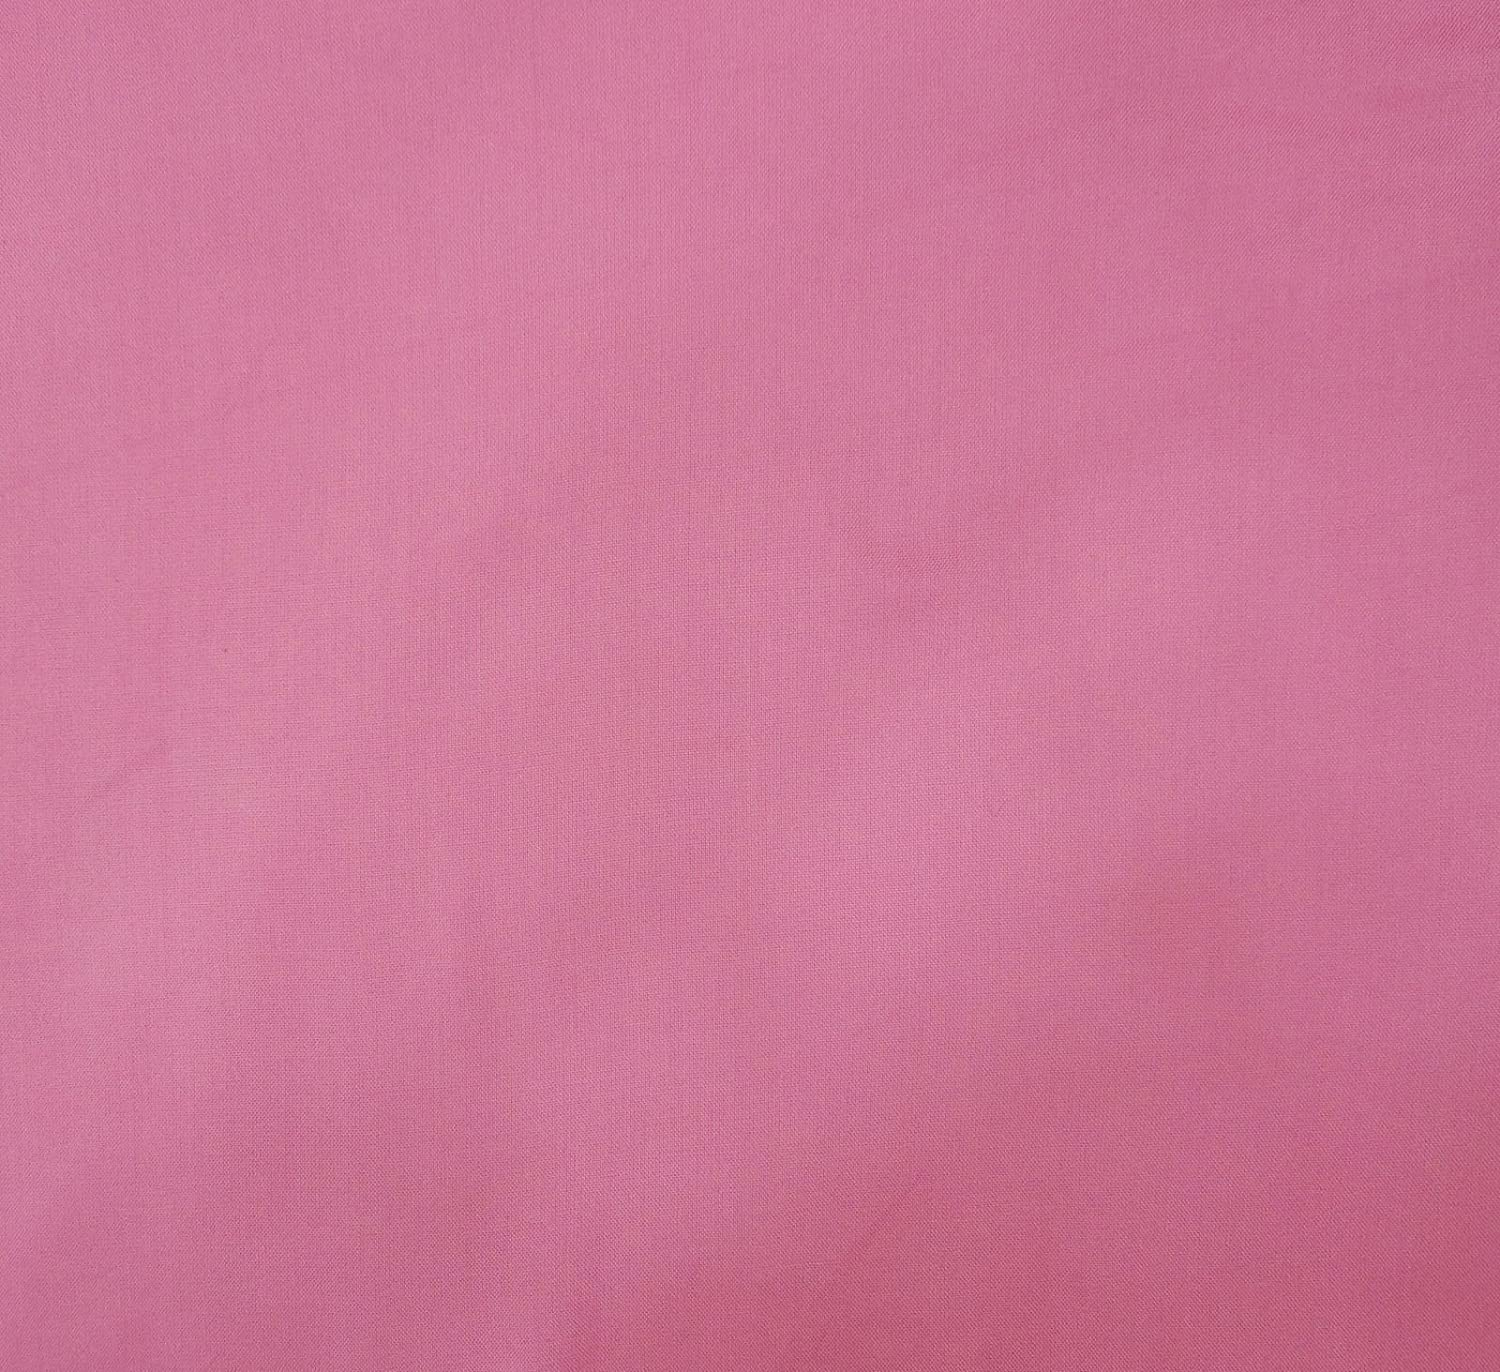 Rayon Solid Fabric Dressmaking 41 Inches Wide Crafting Sewing Fabrics by The Yard